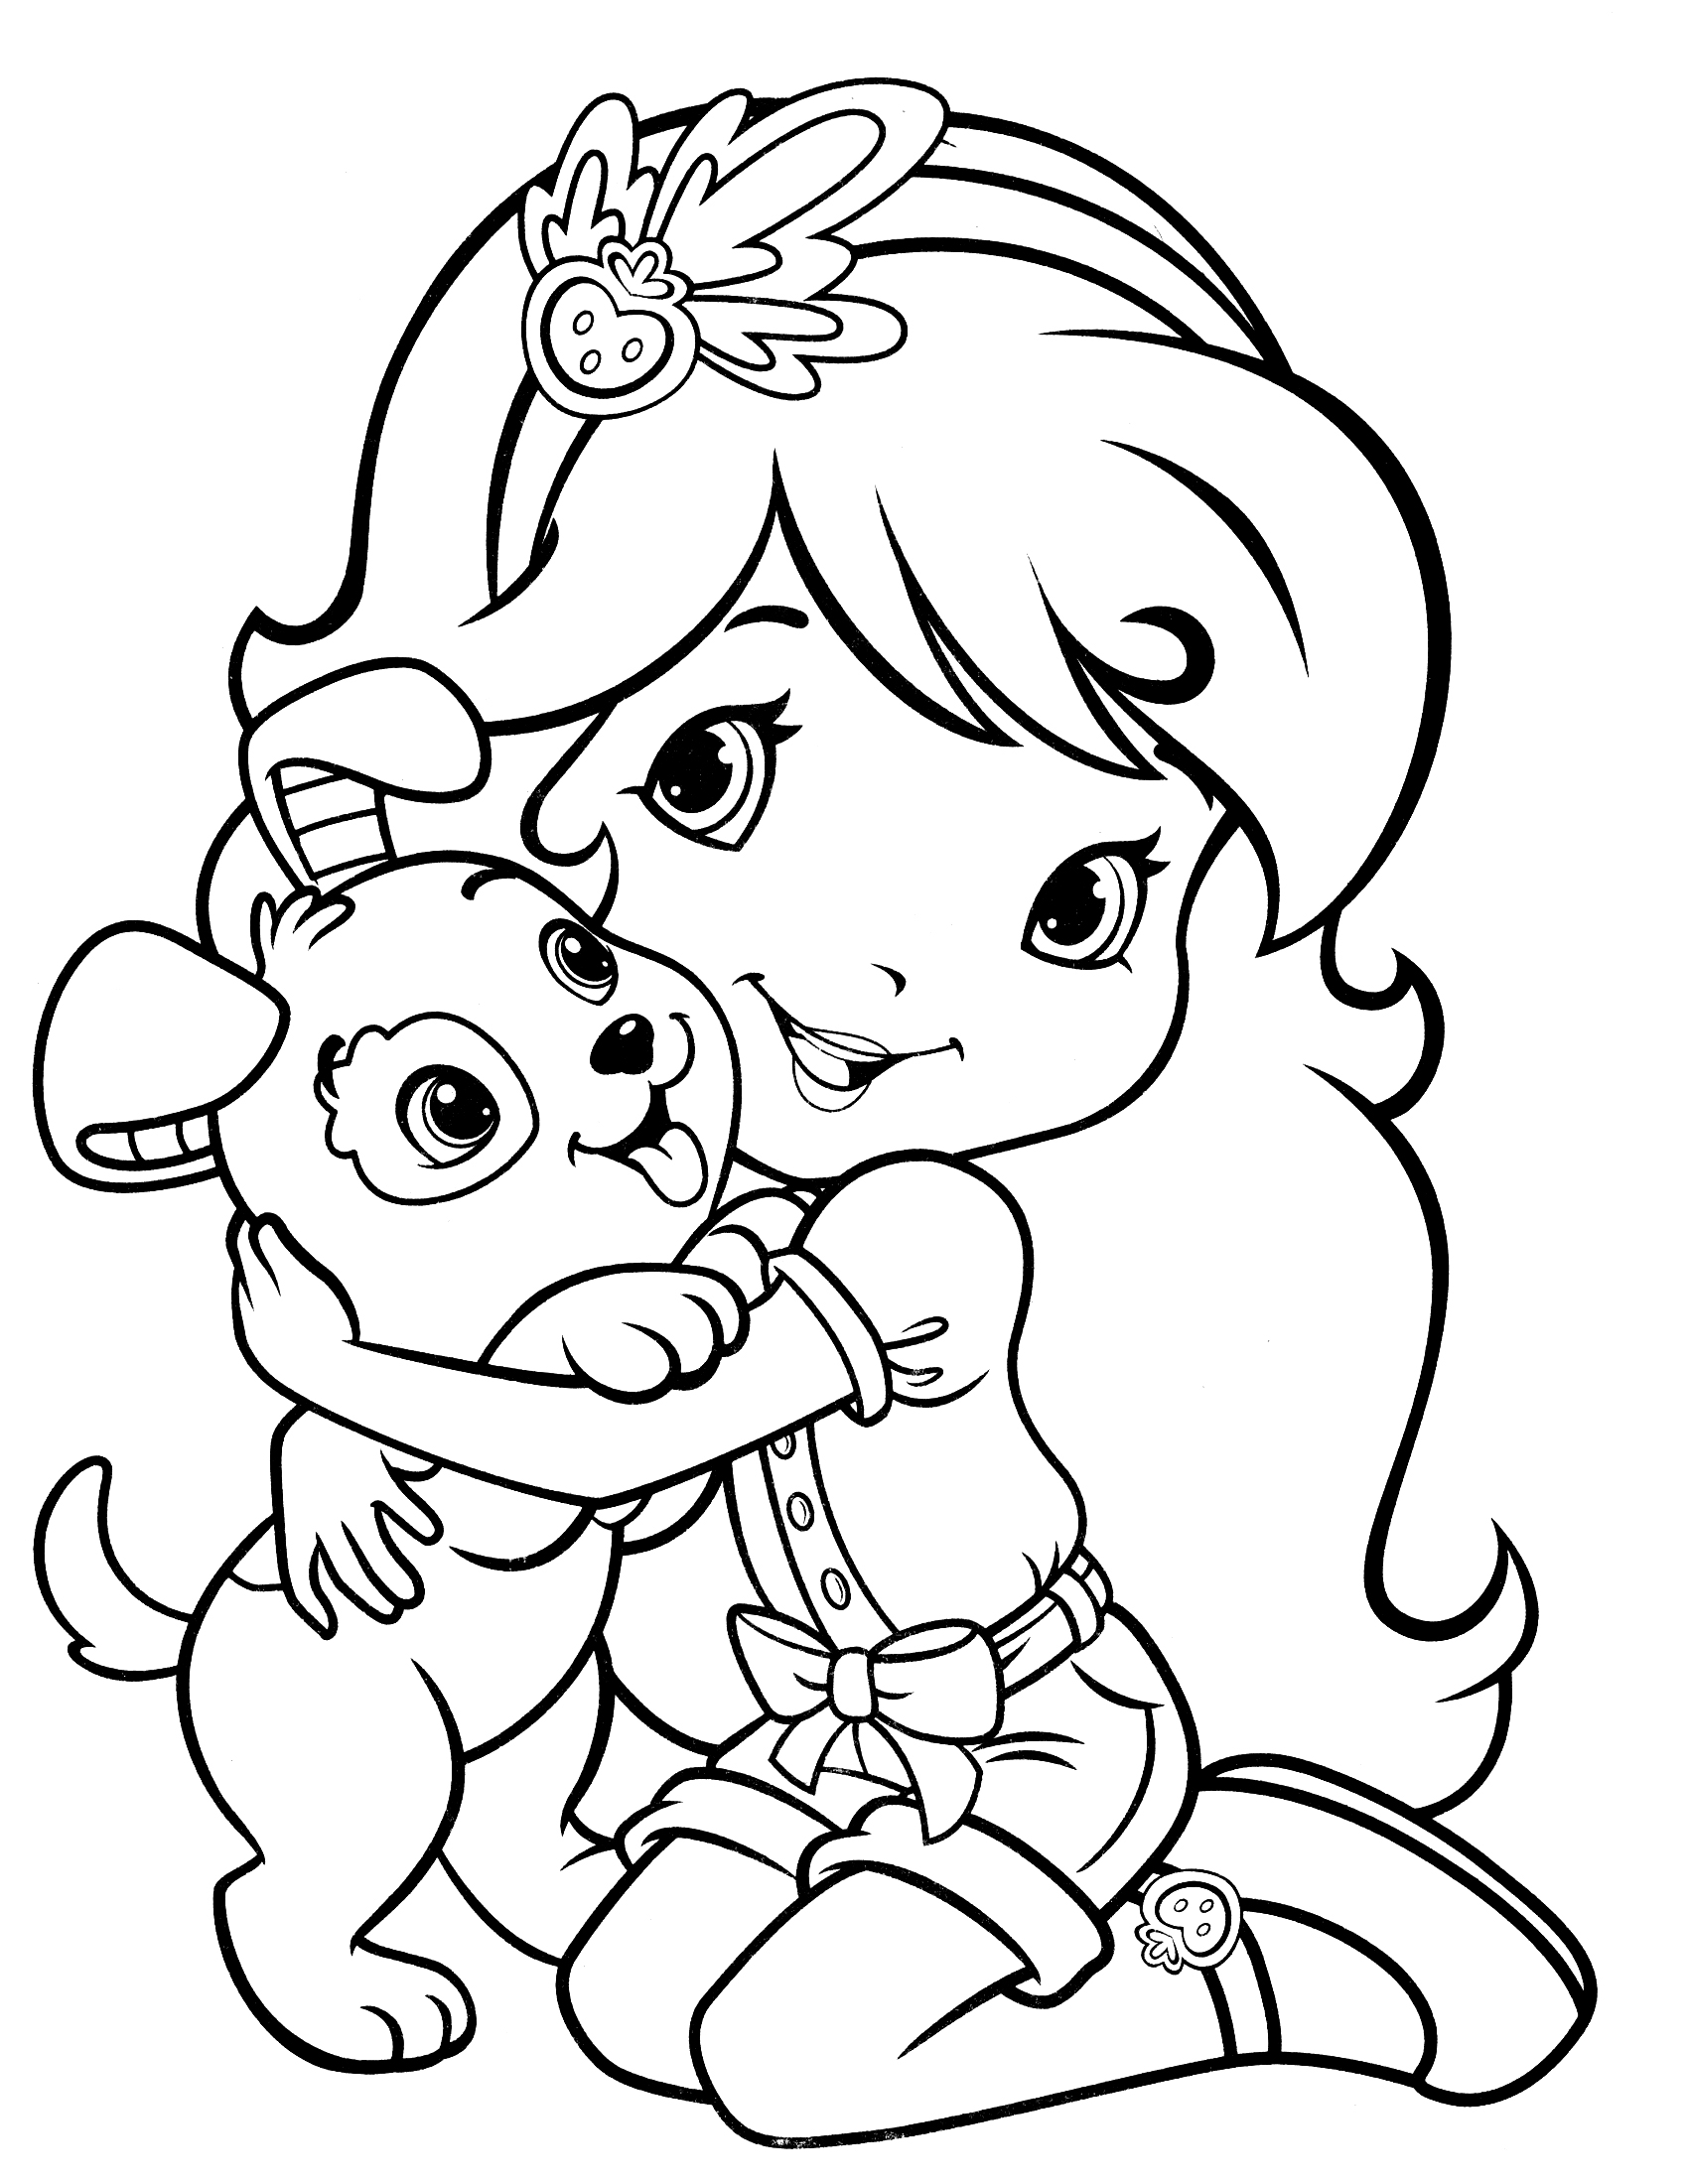 strawberry-shortcake coloring page to print,printable,coloring pages